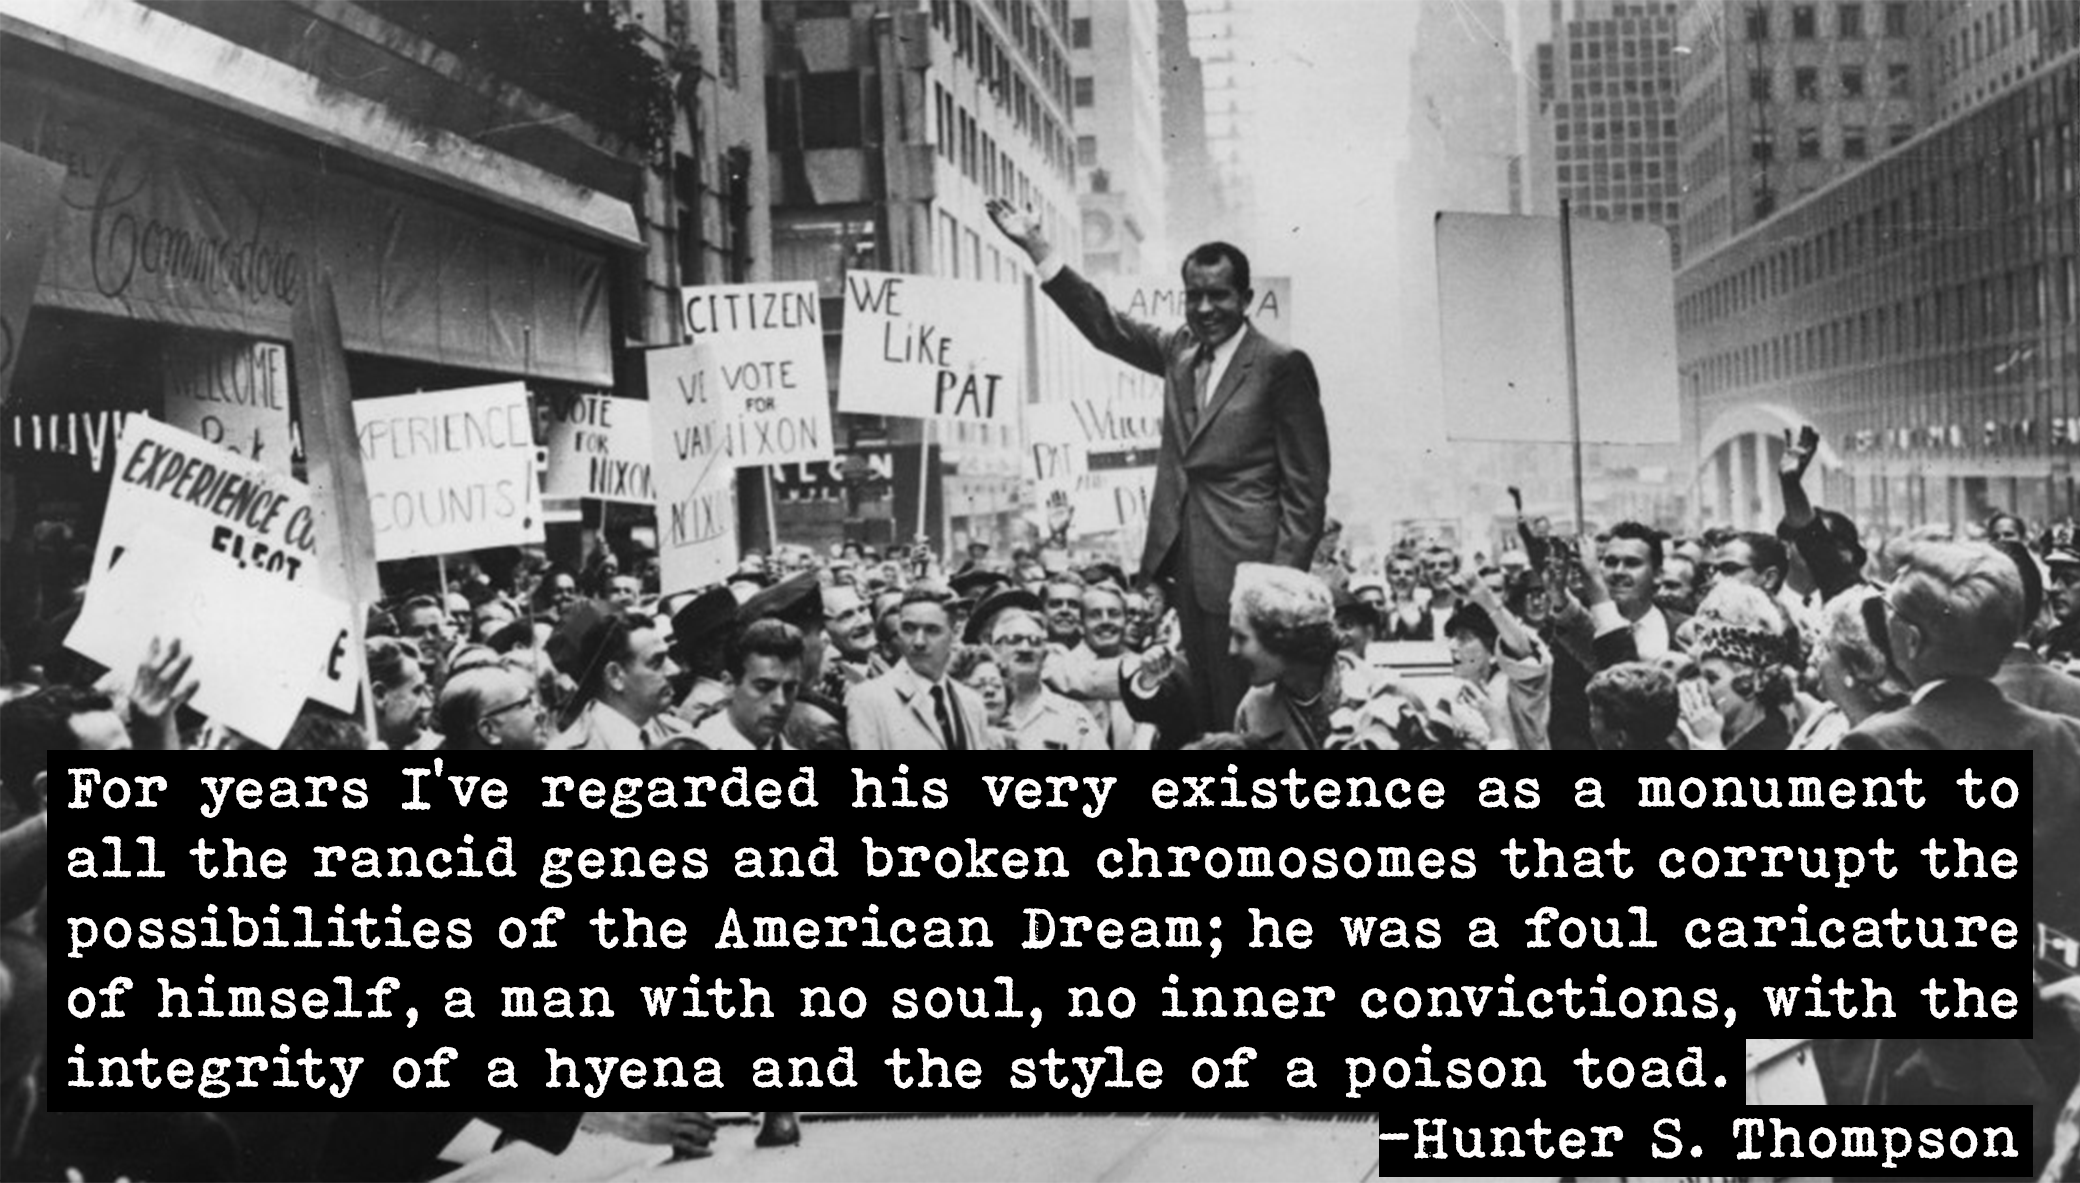 For years I've regarded his very existence as a monument to all the rancid genes and broken chromosomes that corrupt the possibilities of the American Dream…. Hunter S. Thompson on President Nixon [2080 x 1183]